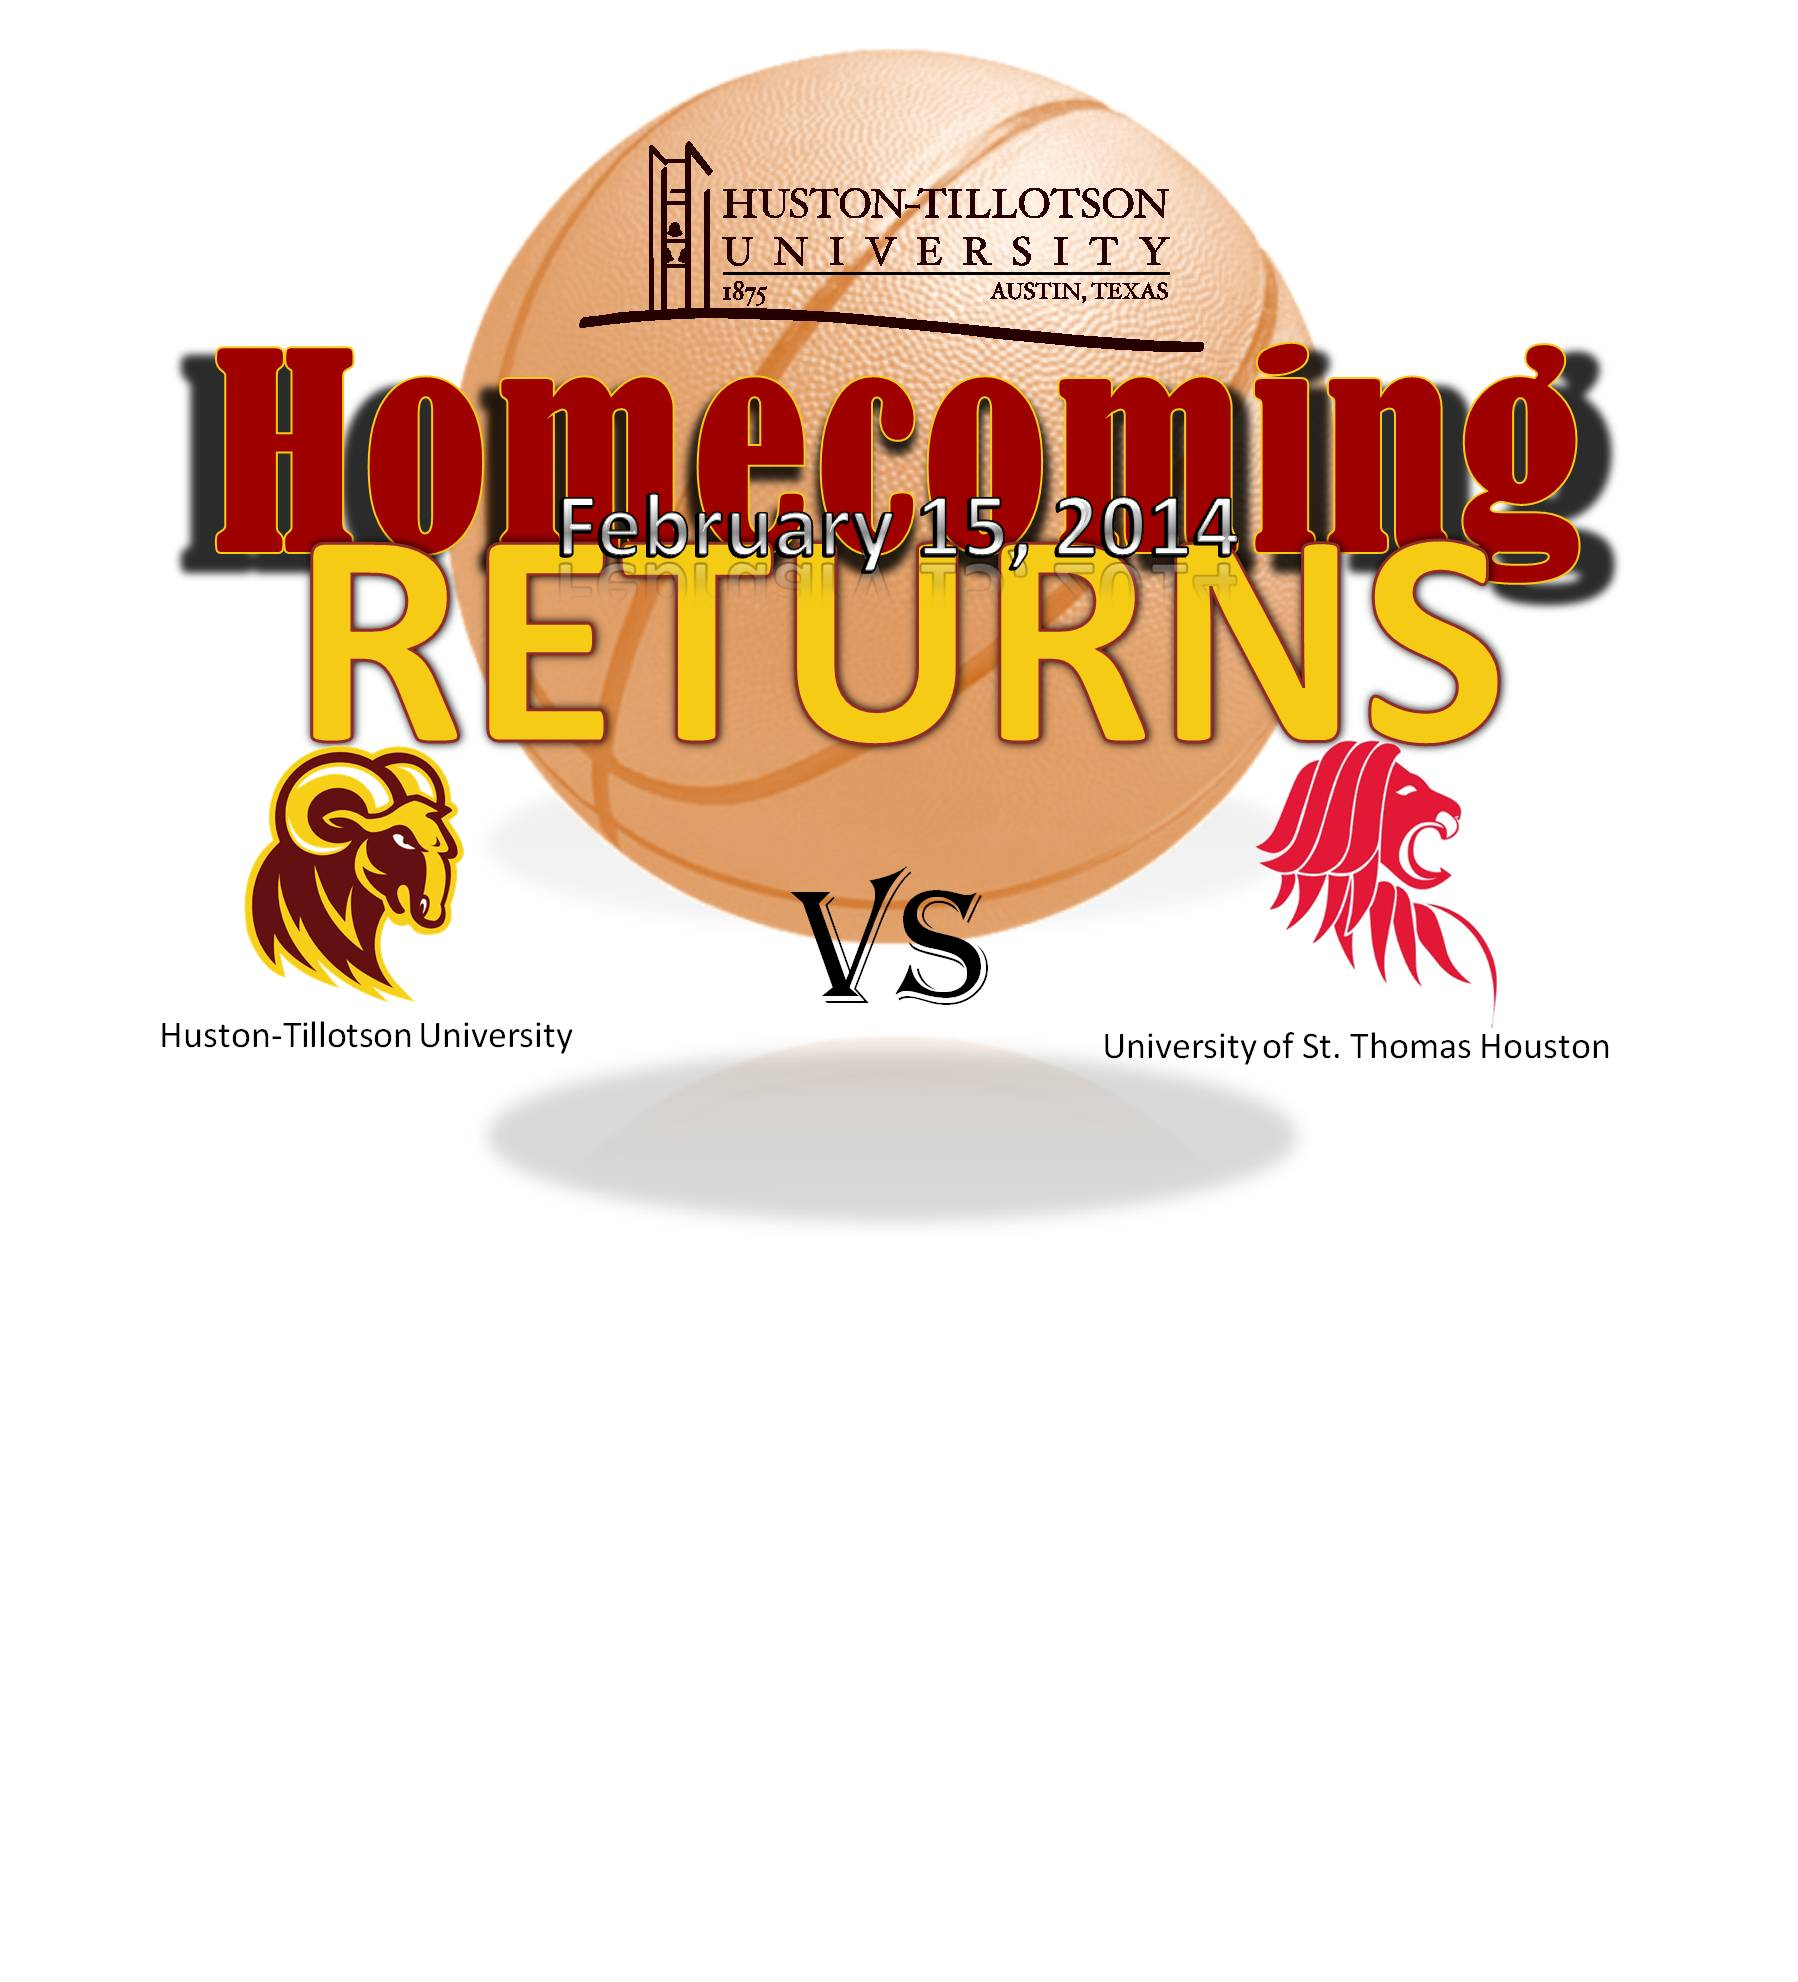 official homecoming save the date flyer huston tillotson